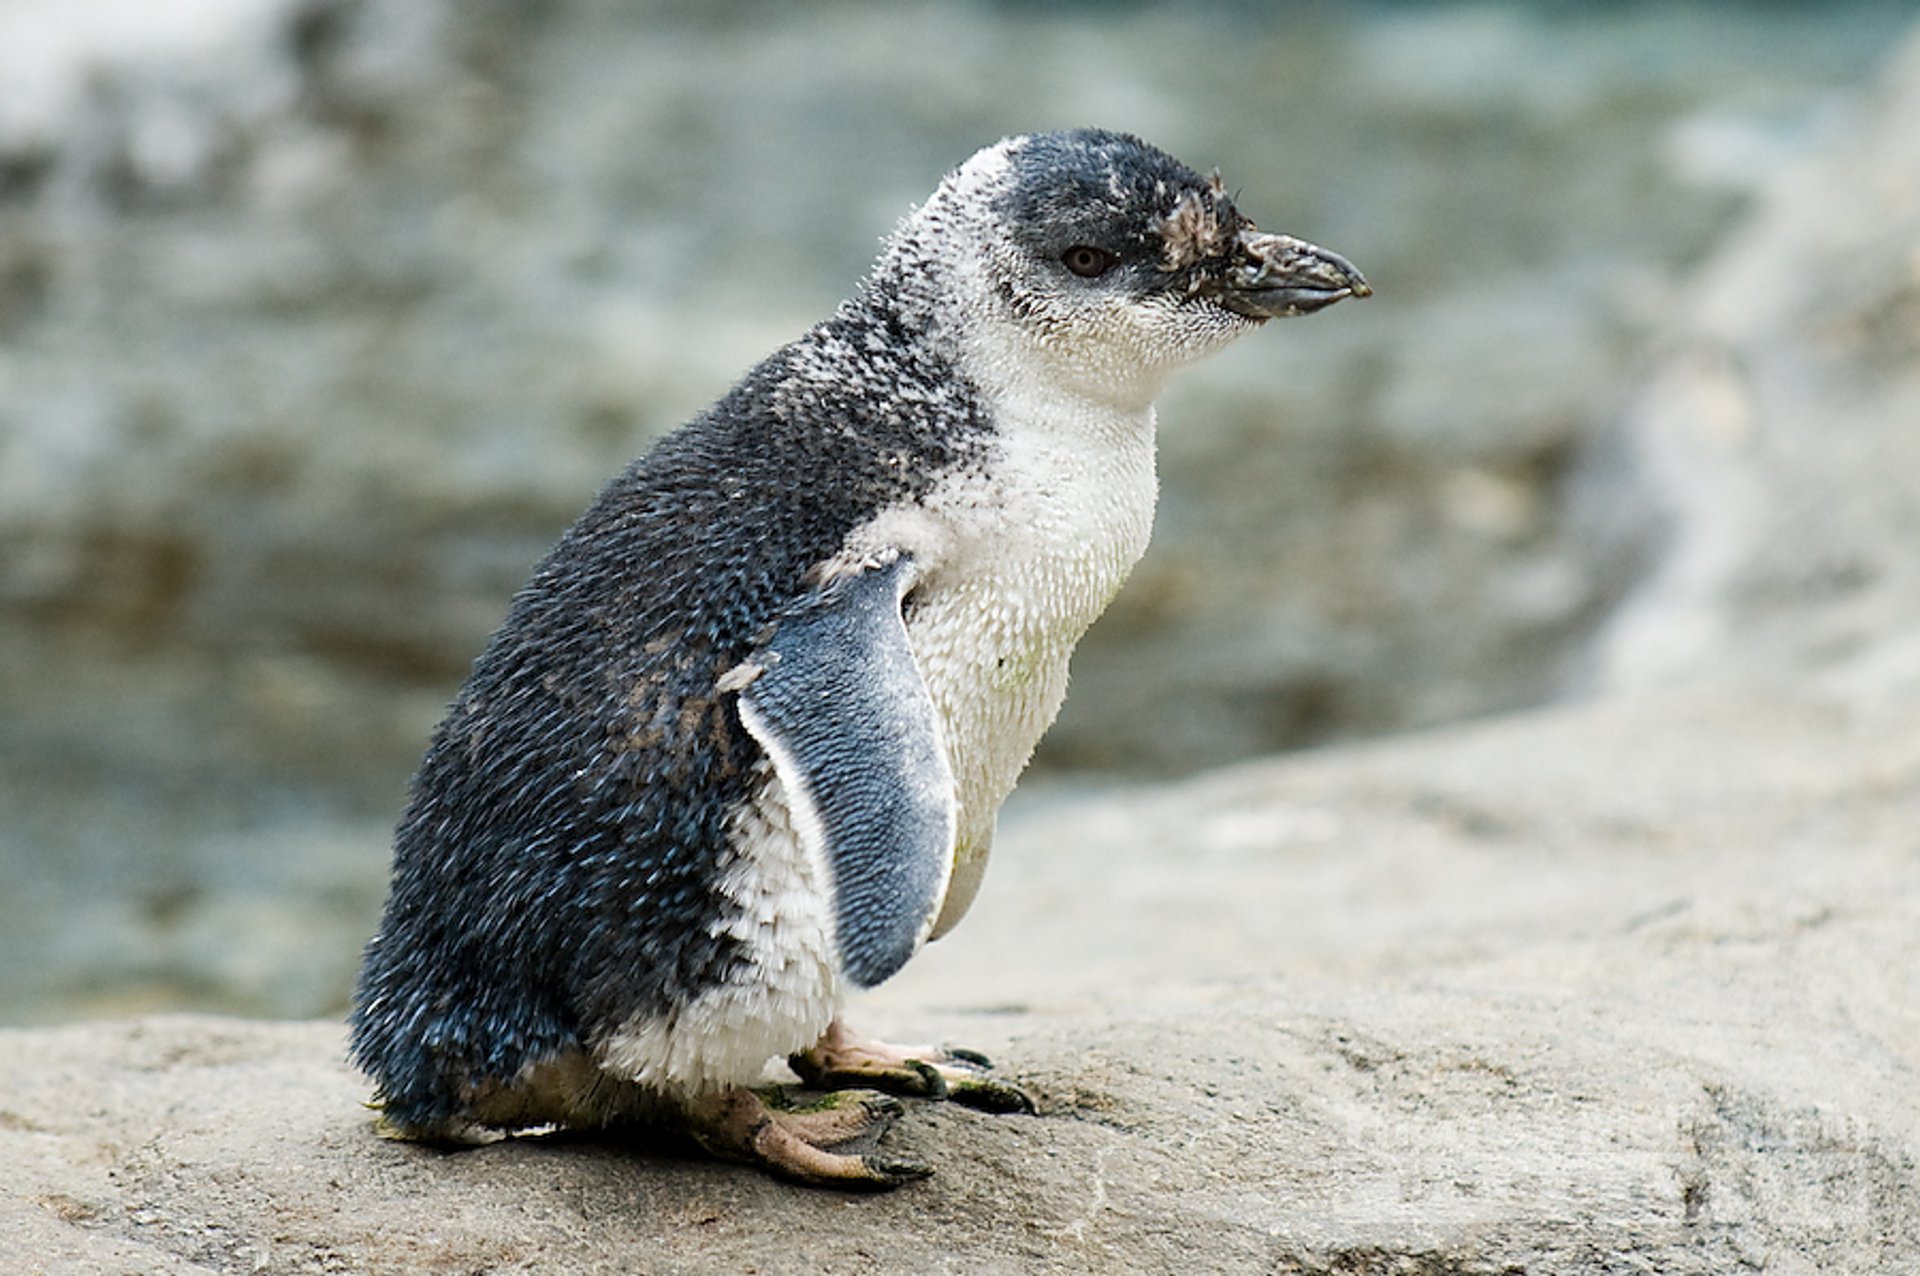 Kororā (Little Penguin) Breeding Season in New Zealand 2019 - Best Time